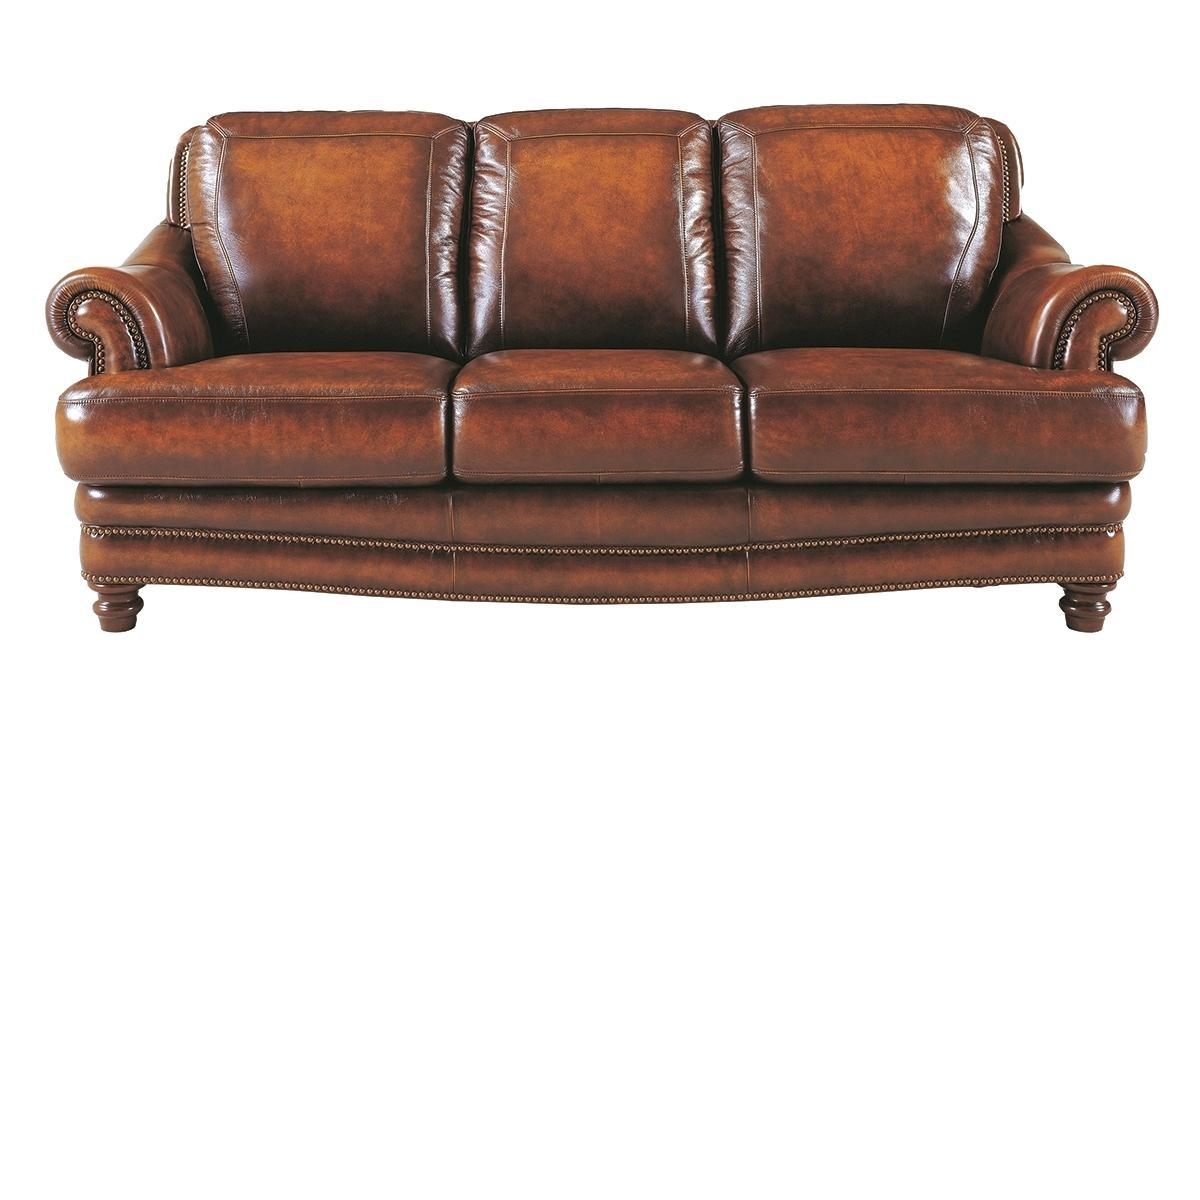 Sofas Center : Remarkablelback Leather Sofa Photo Ideas With Regard To Camelback Leather Sofas (View 10 of 20)